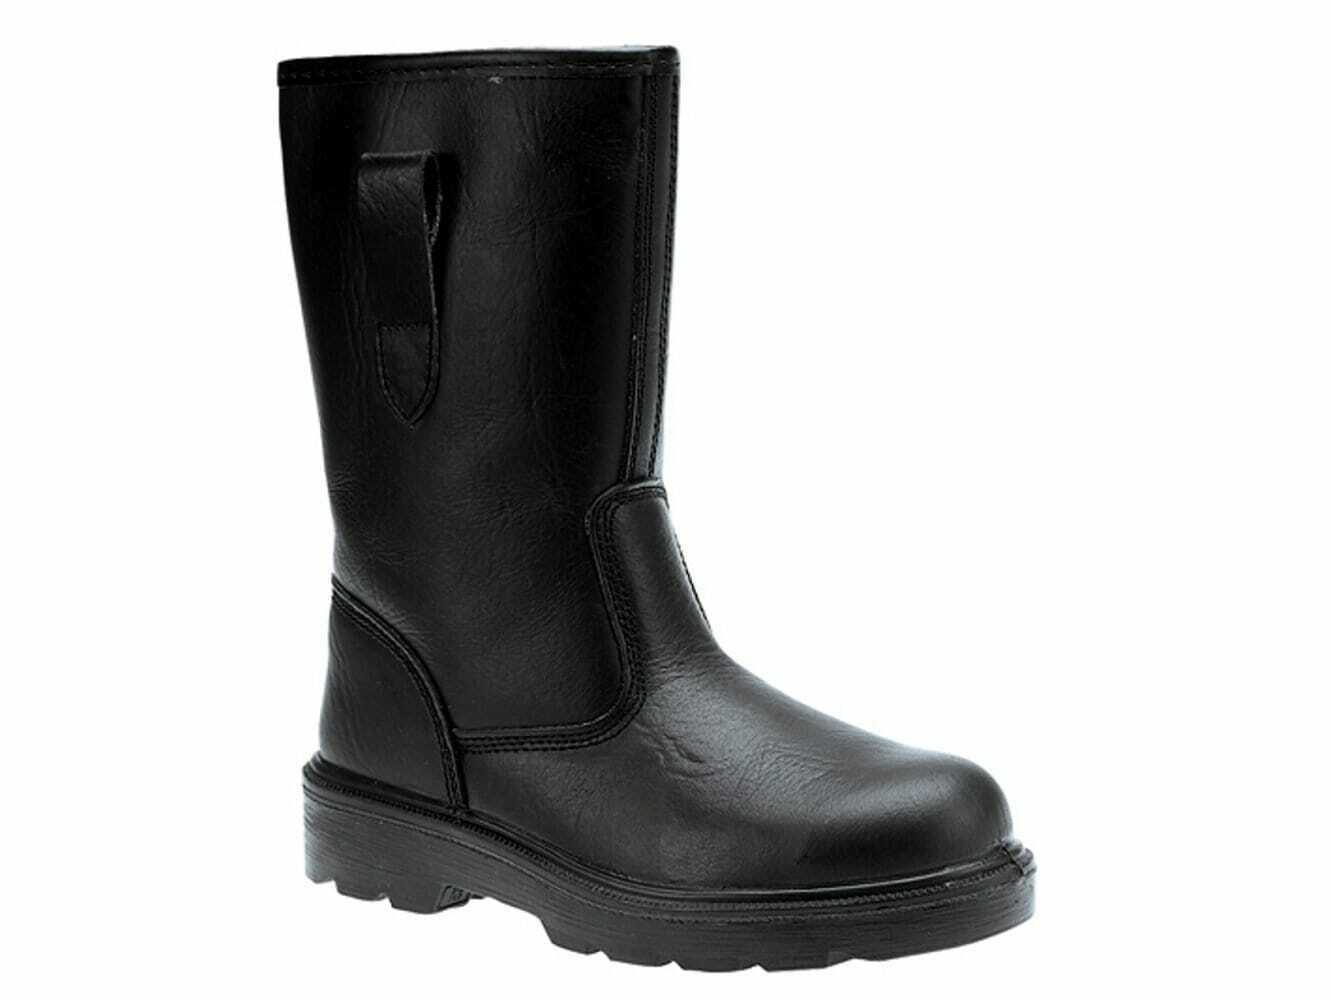 Grafters Mens Leather Comfy Industrial Steel Toe Safety Rigger Boots Black